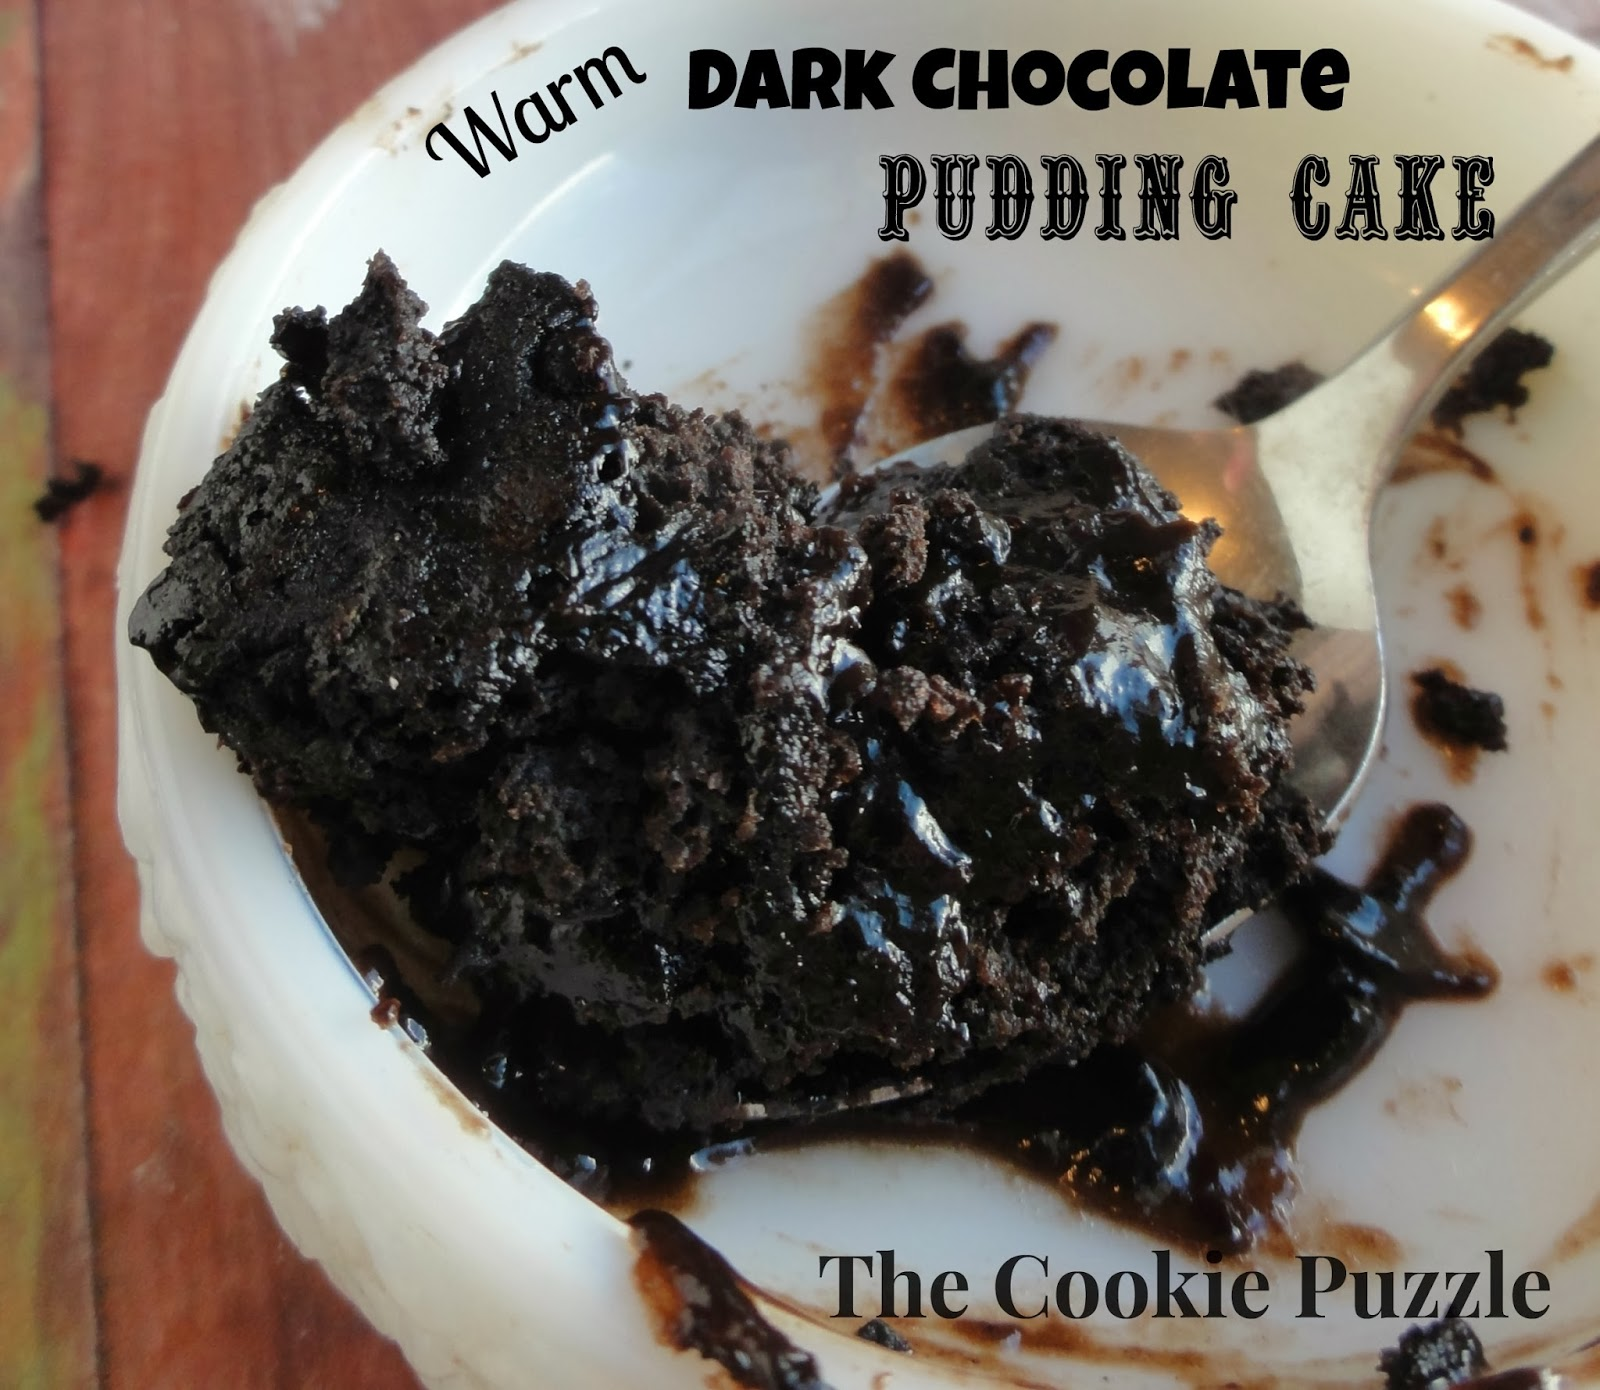 The Cookie Puzzle: Warm Dark Chocolate Pudding Cake